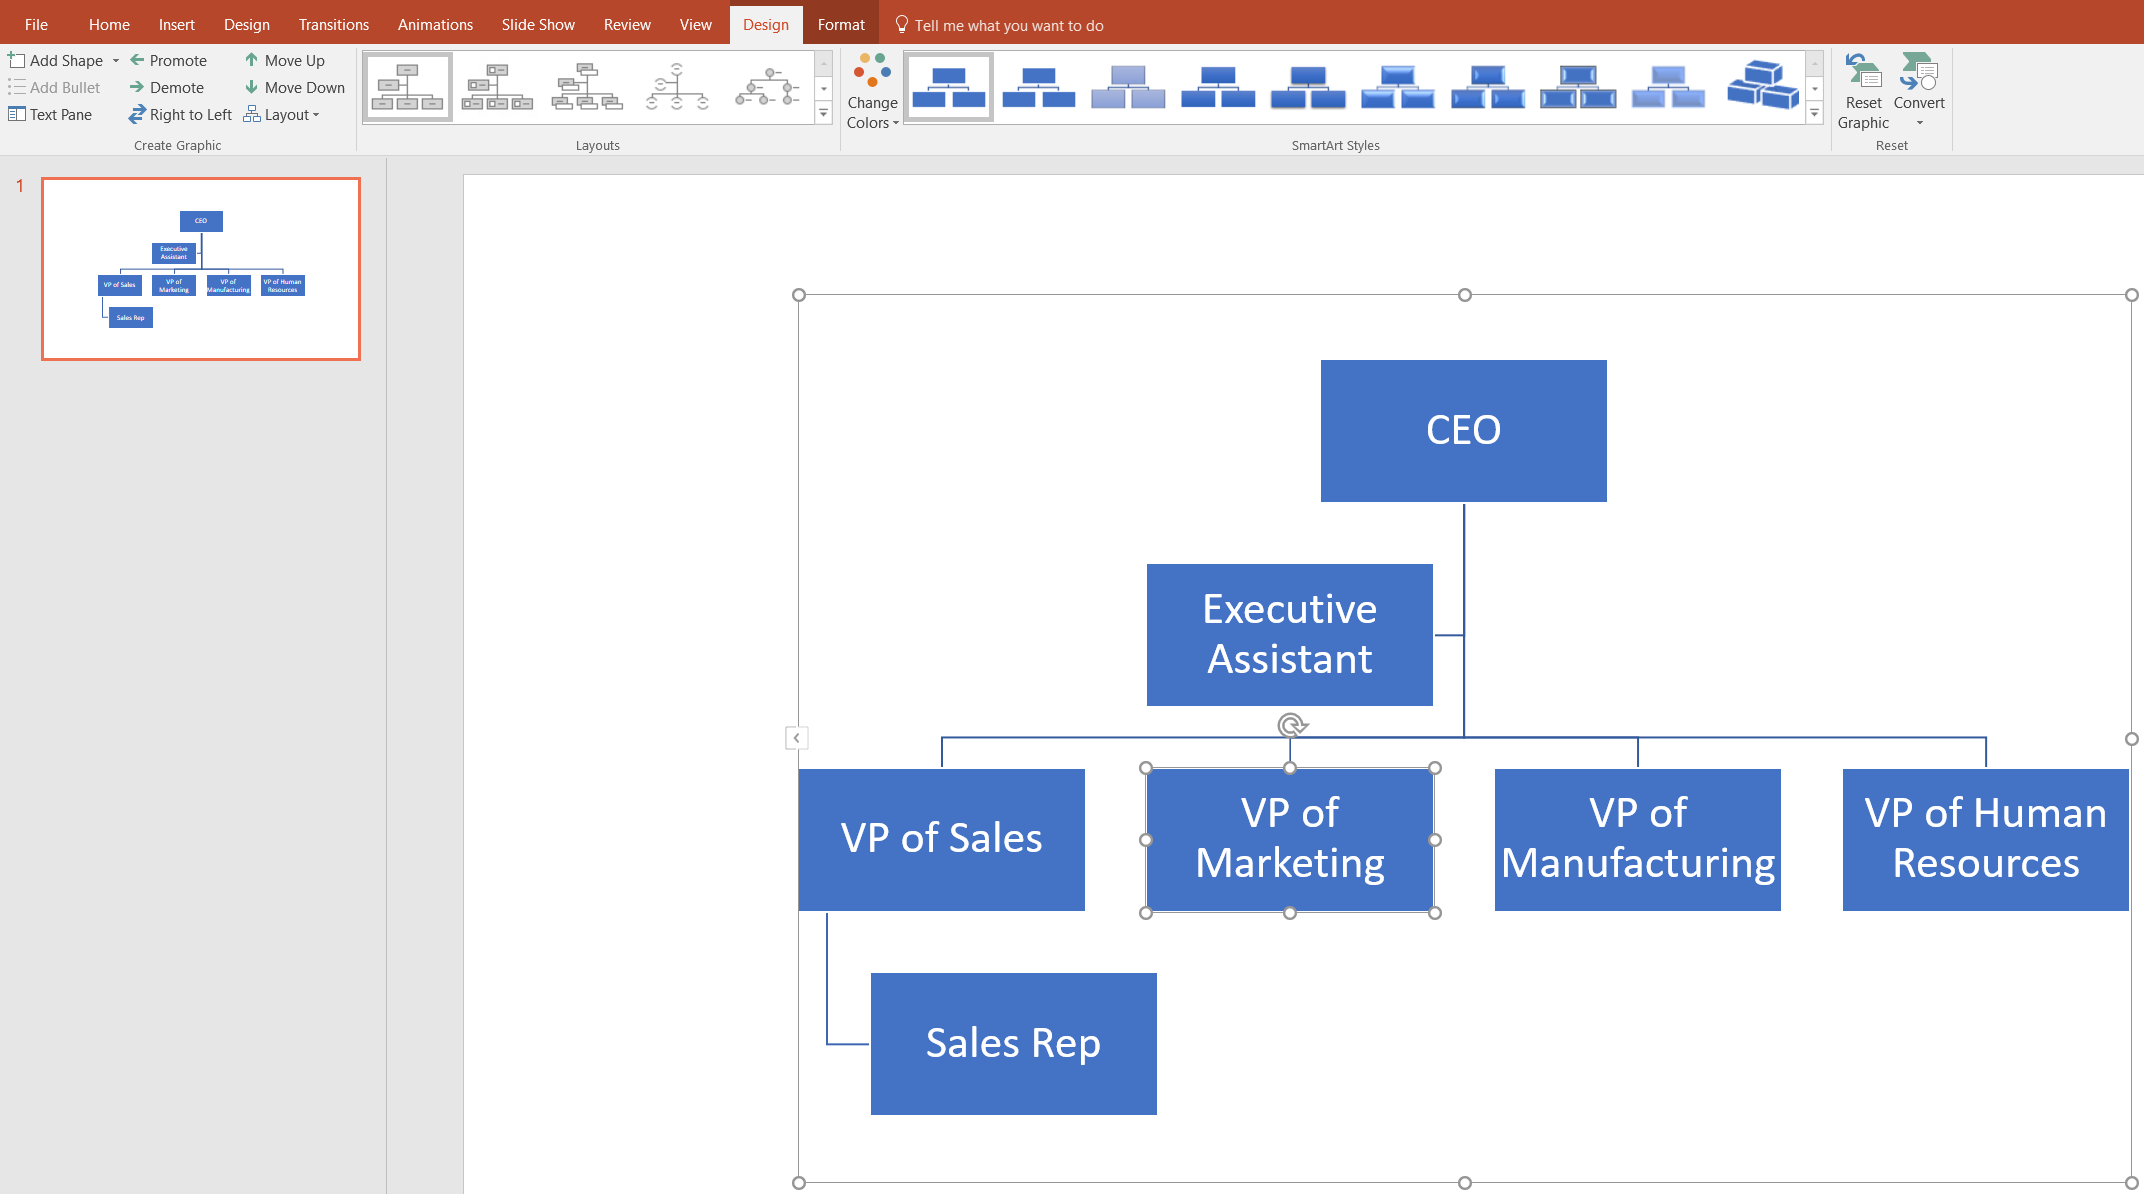 How To Make An Org Chart In Powerpoint Lucidchart Its Very Simple Just Follow The Diagram That I Attached Organizational